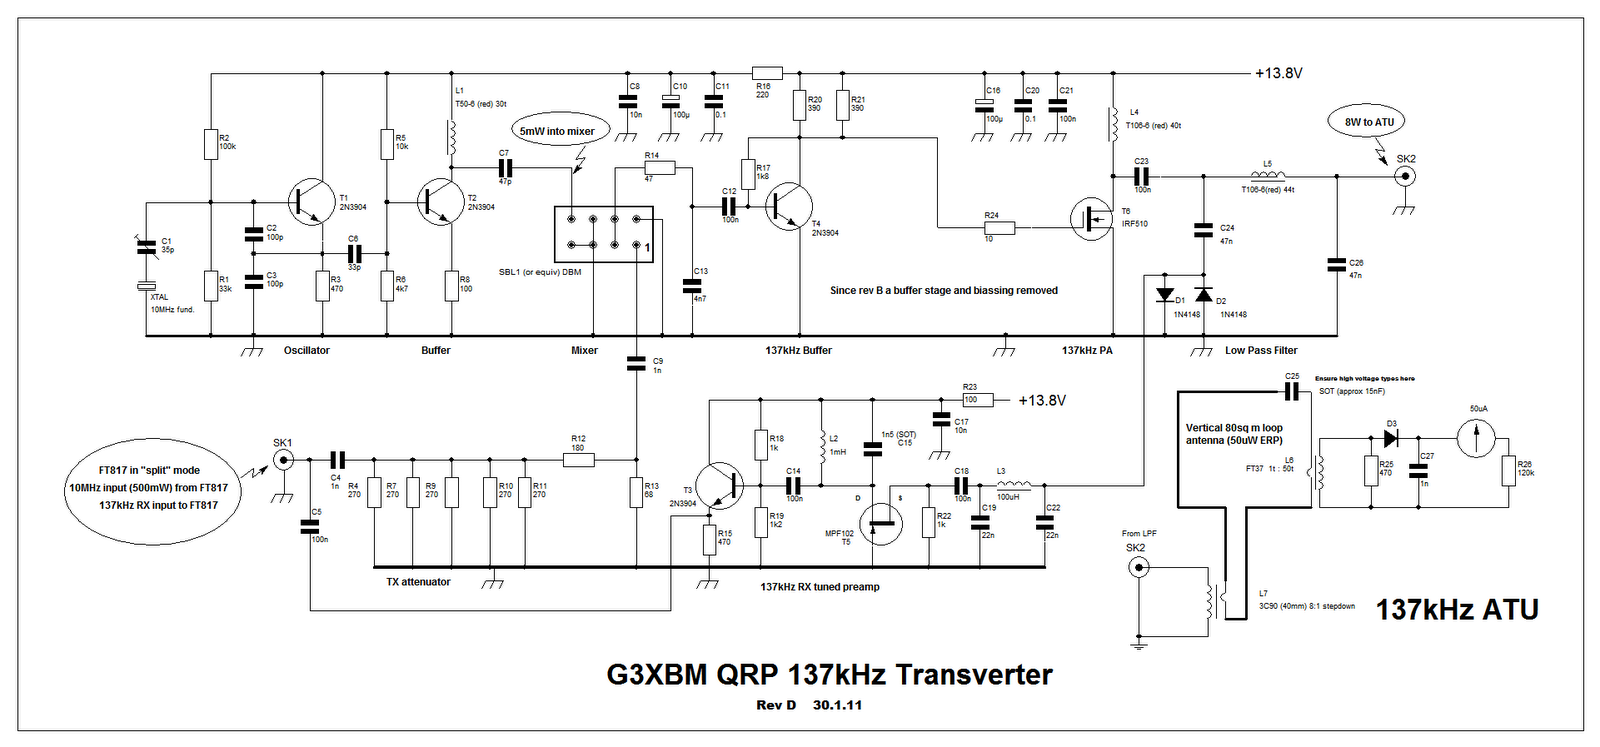 le transverter 137 khz qrp de g3xbm passion radio blog. Black Bedroom Furniture Sets. Home Design Ideas